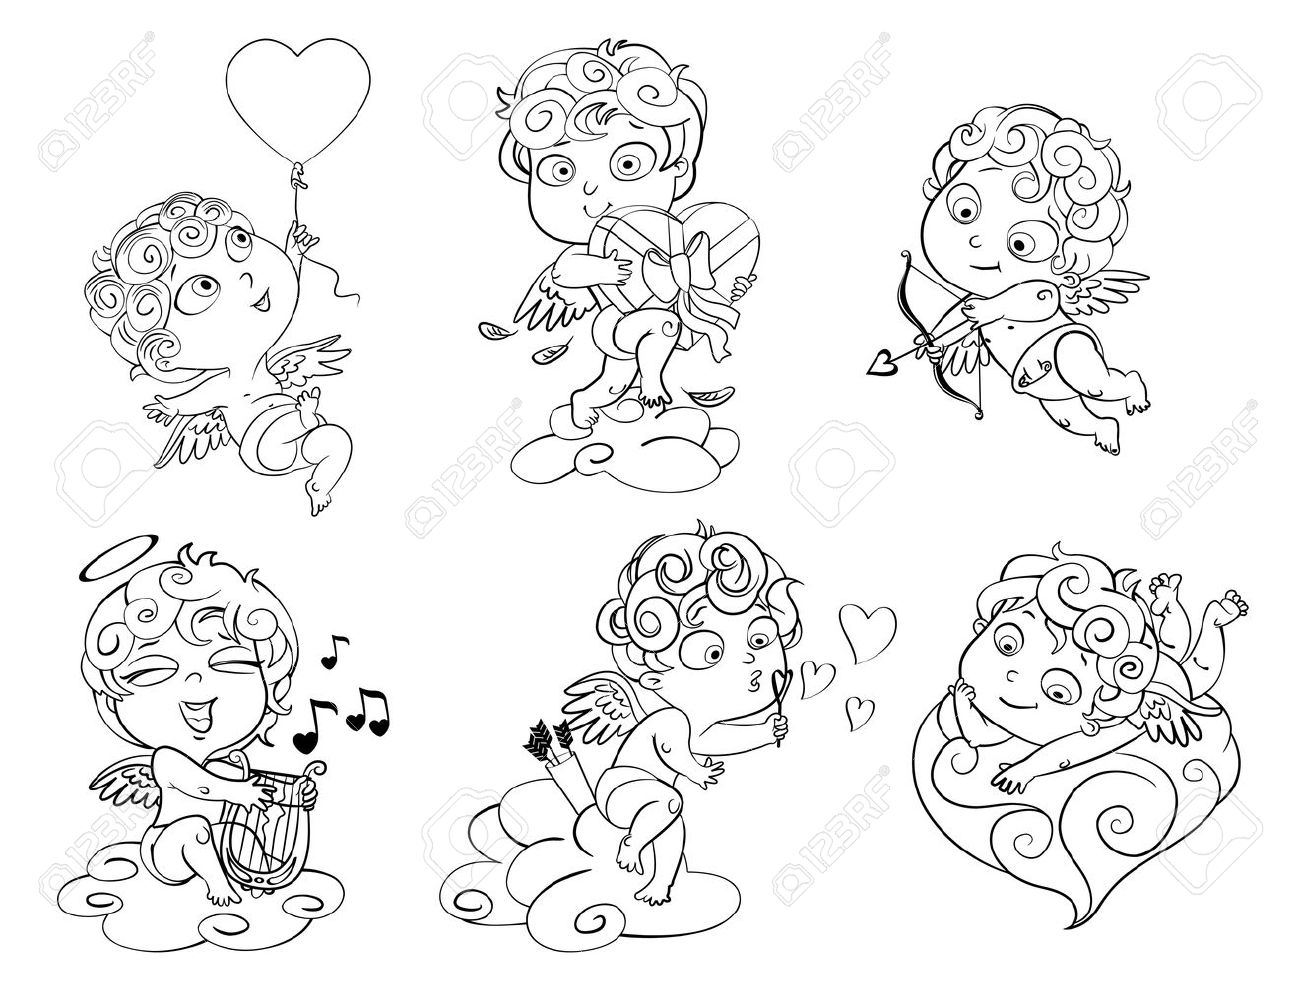 Cupid playing music on the lyre, blow bubbles, Coloring book Stock Vector - 17324751